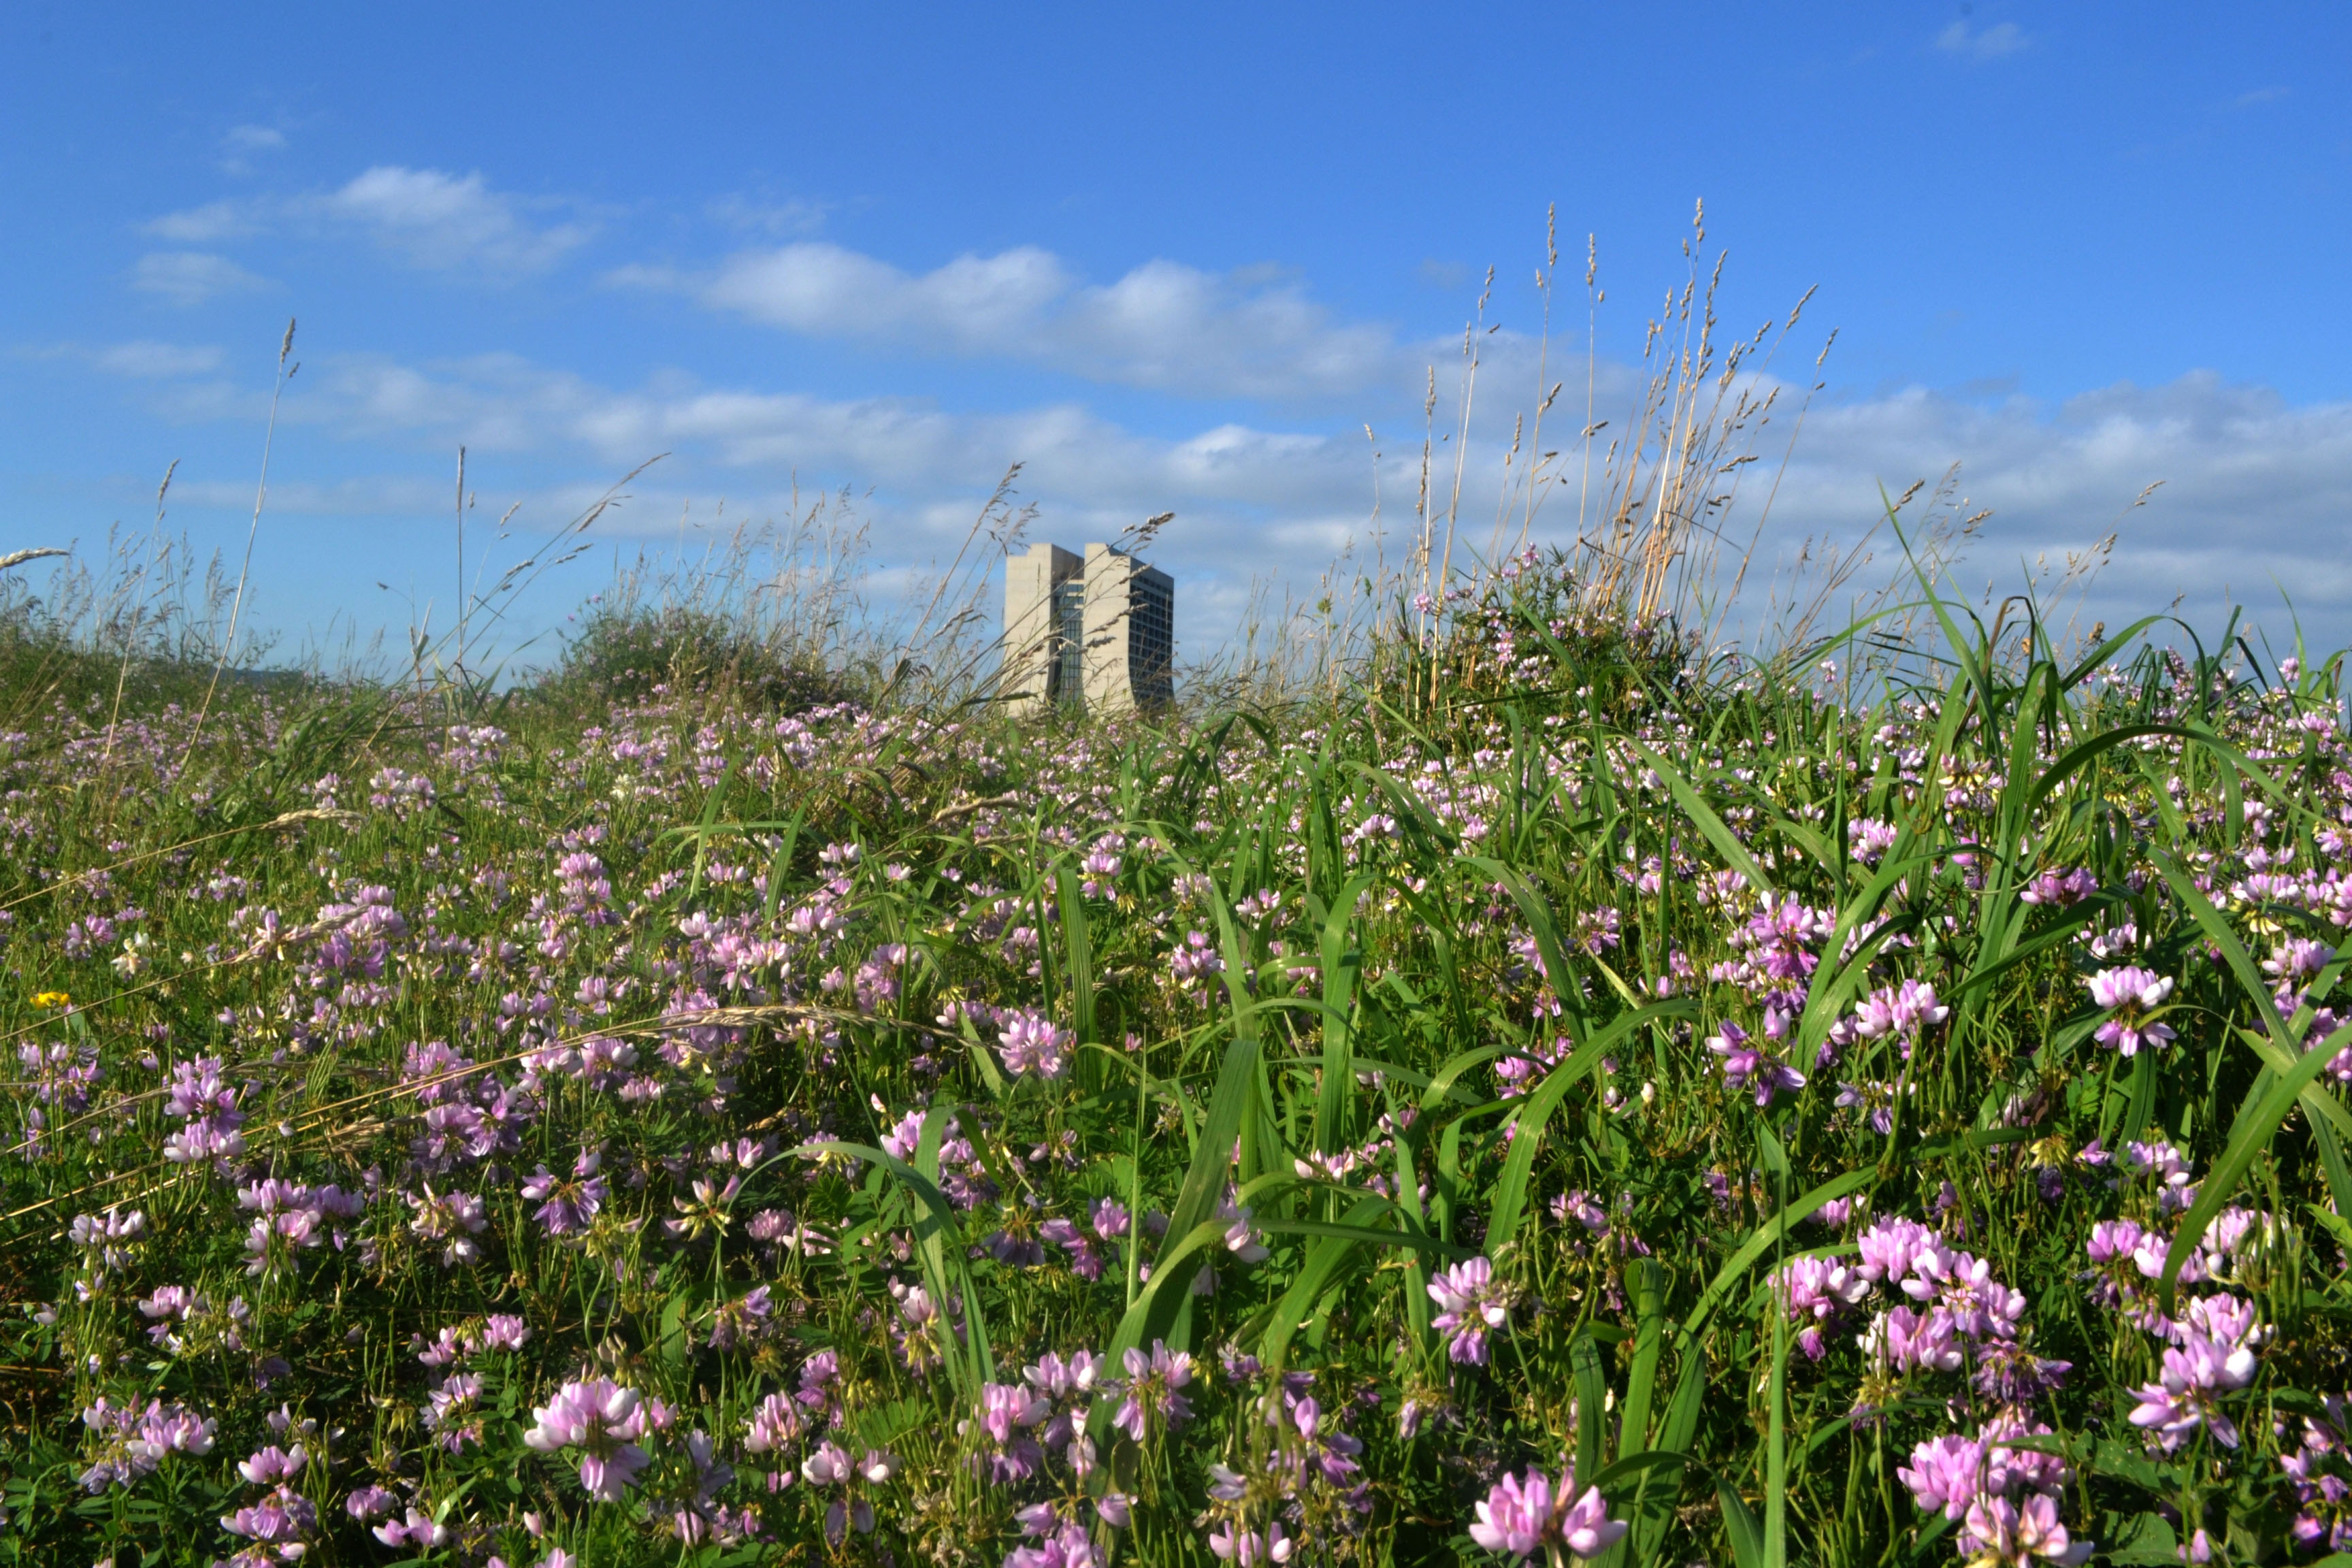 A field of crown vetch near M8 stretches far and wide behind Wilson Hall. Photo: Patrick Sheahan, AD